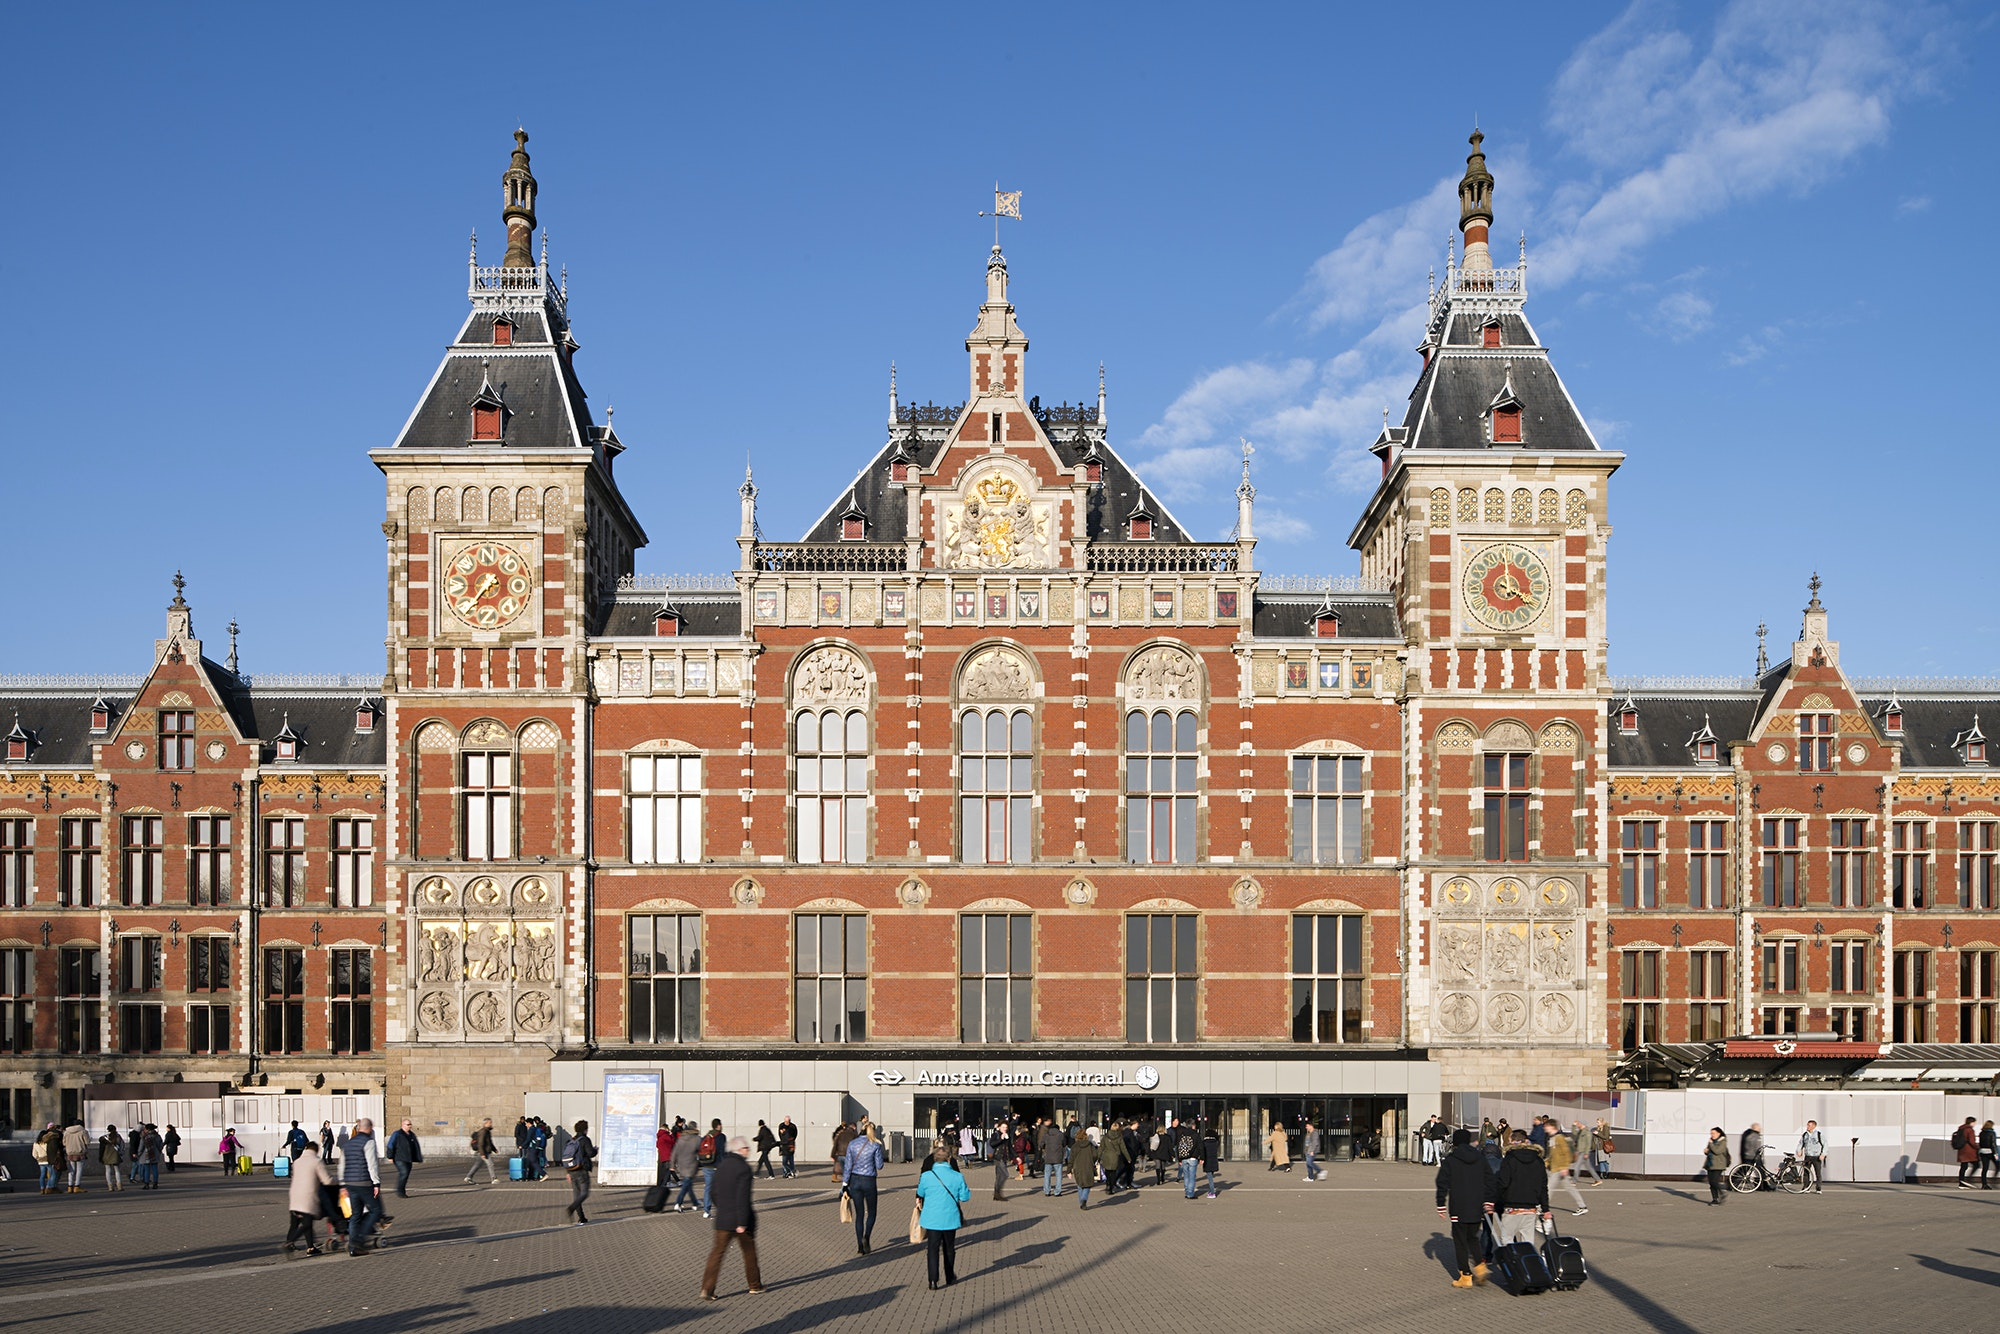 The red-brick Amsterdam Centraal Station looks more like a palace than a train station.